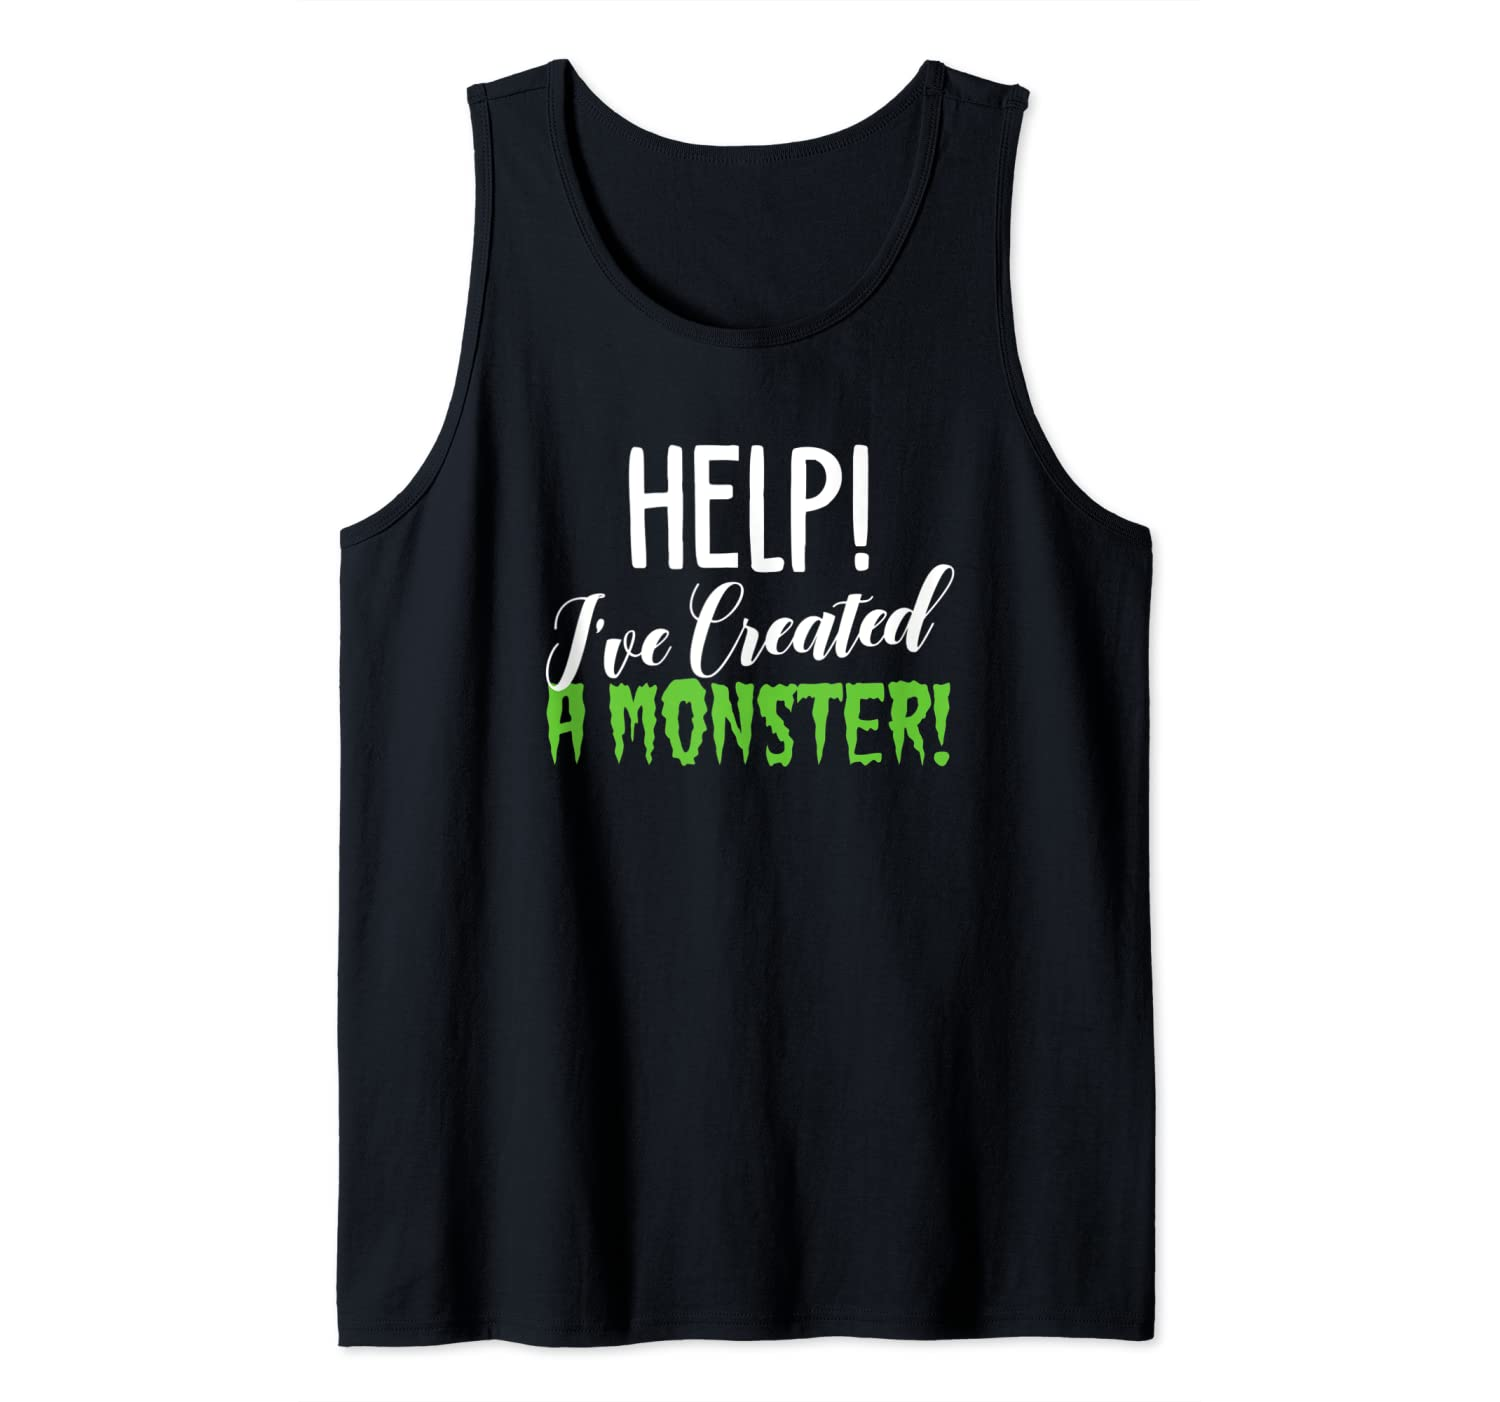 Help Ive Created a Monster Awesome Scary Spooky Fun Monster Tank Top